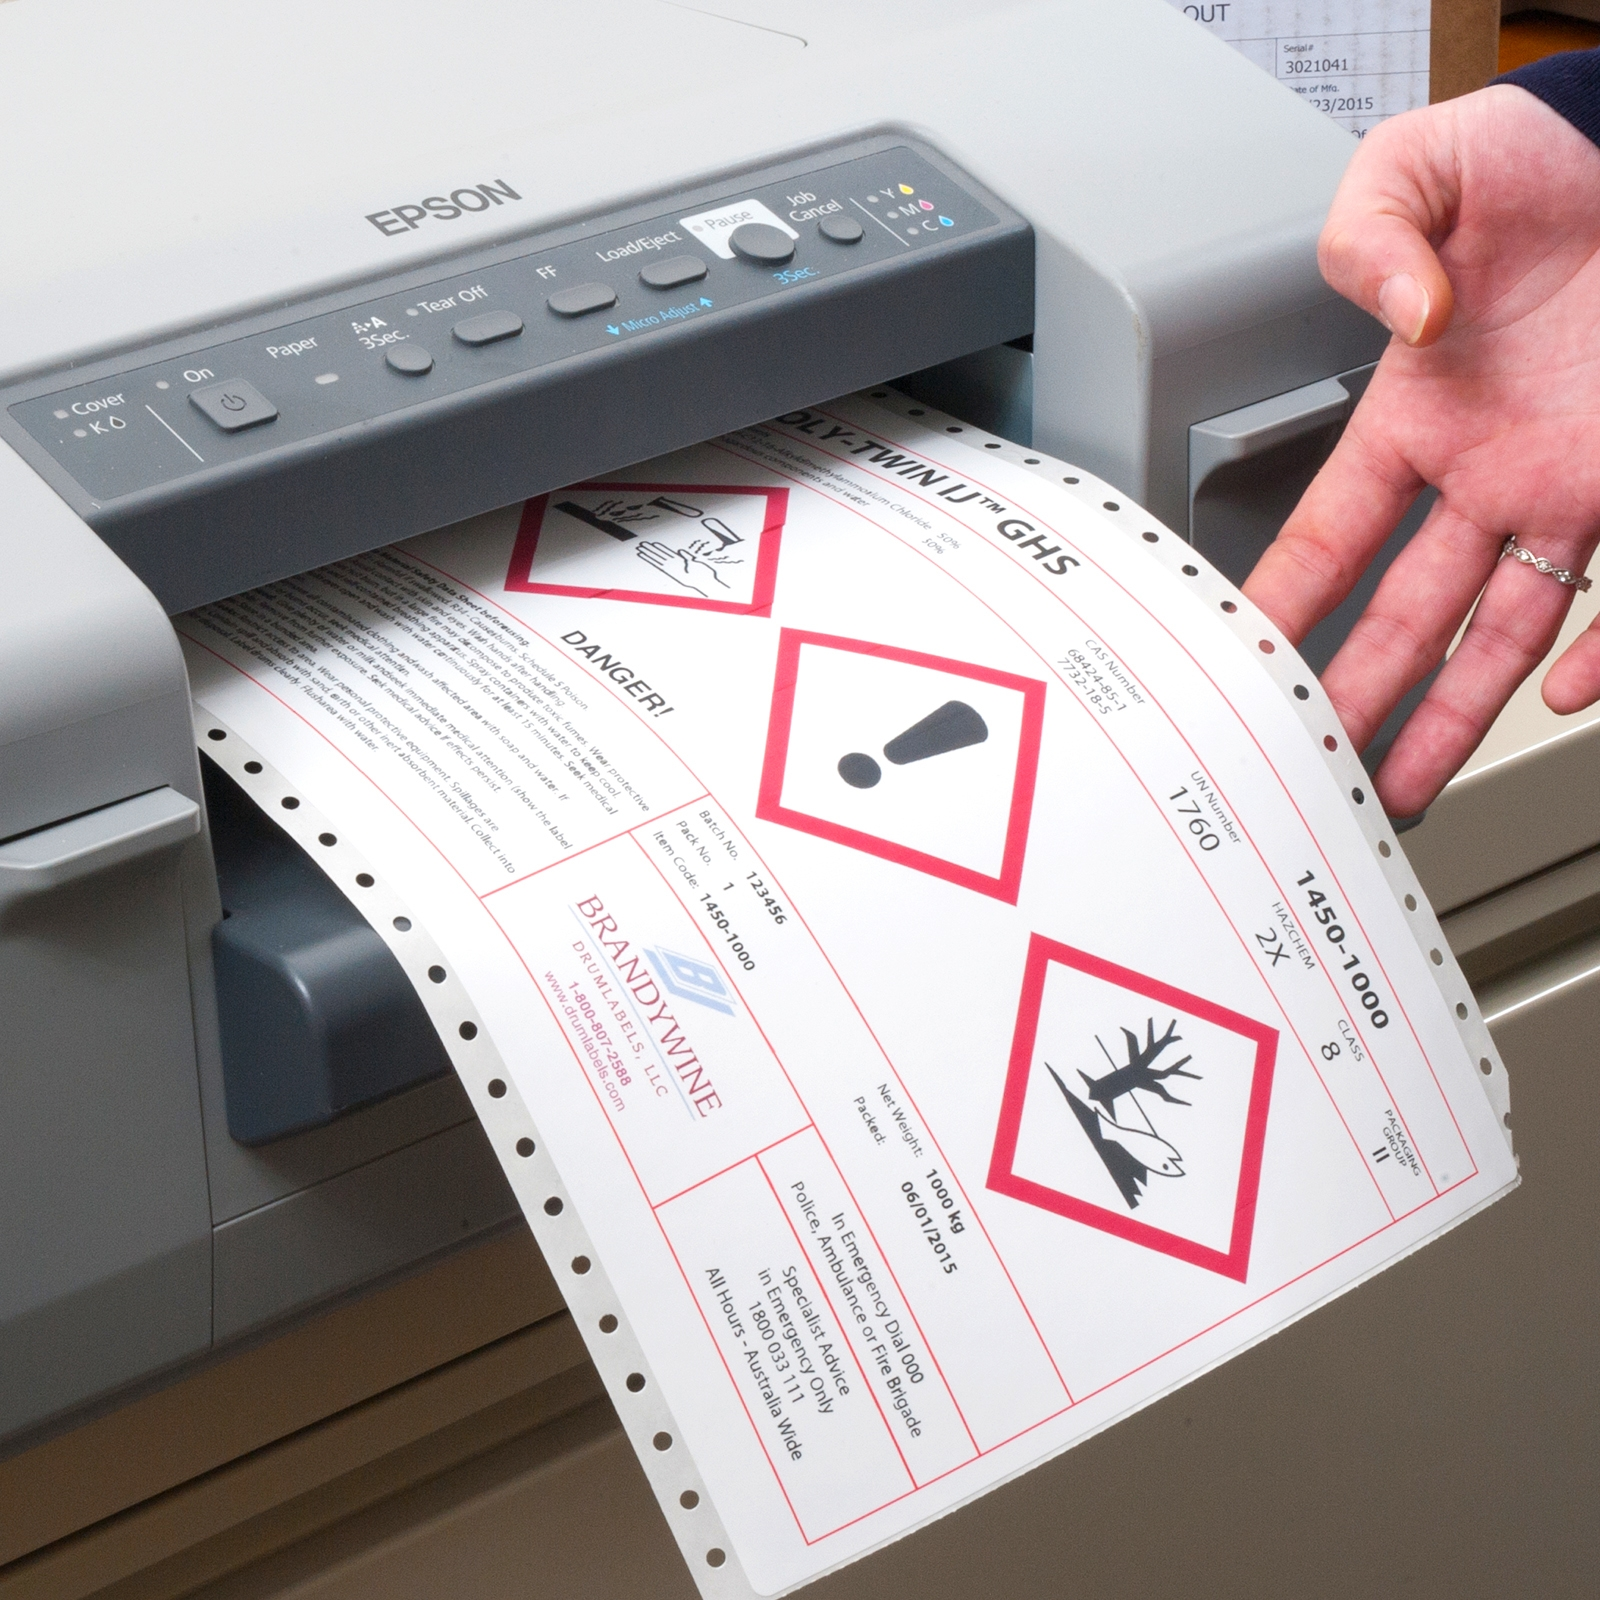 Brandywine can recommend business printers for in-house, on-demand use specific to your unique needs.